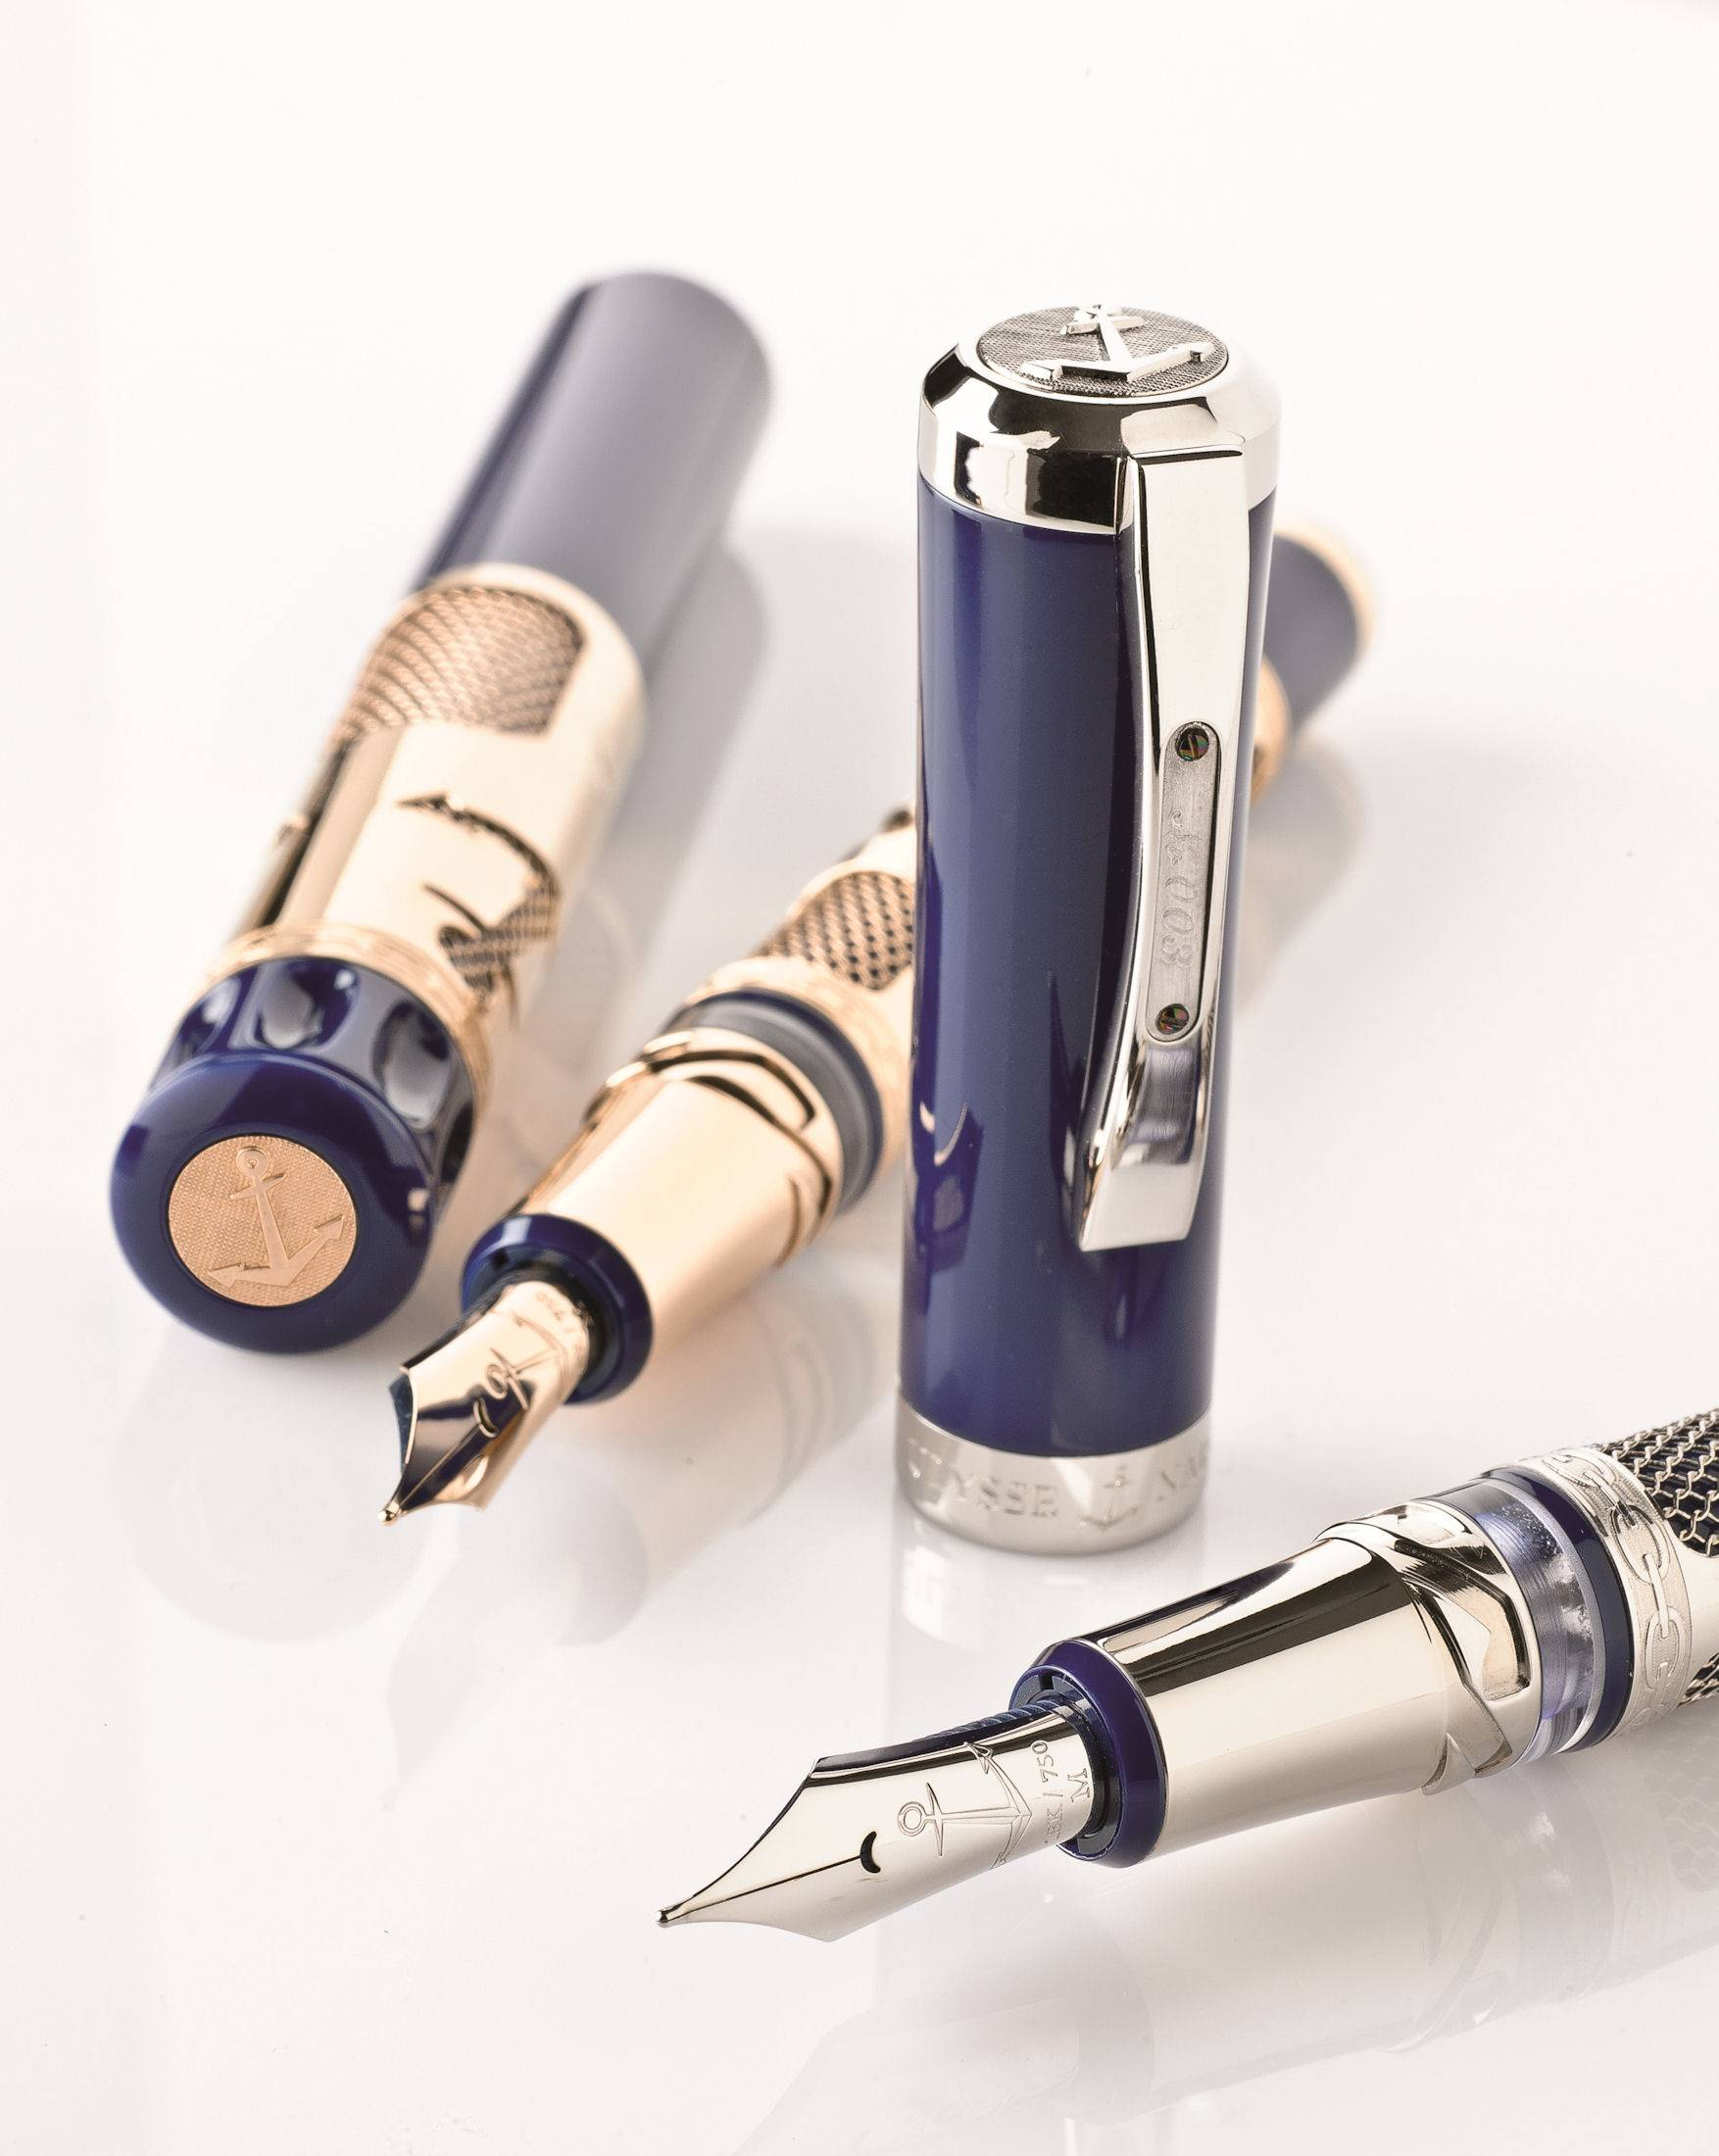 Haute Time: Unique Fountain Pen Created by Ulysse Nardin and Visconti